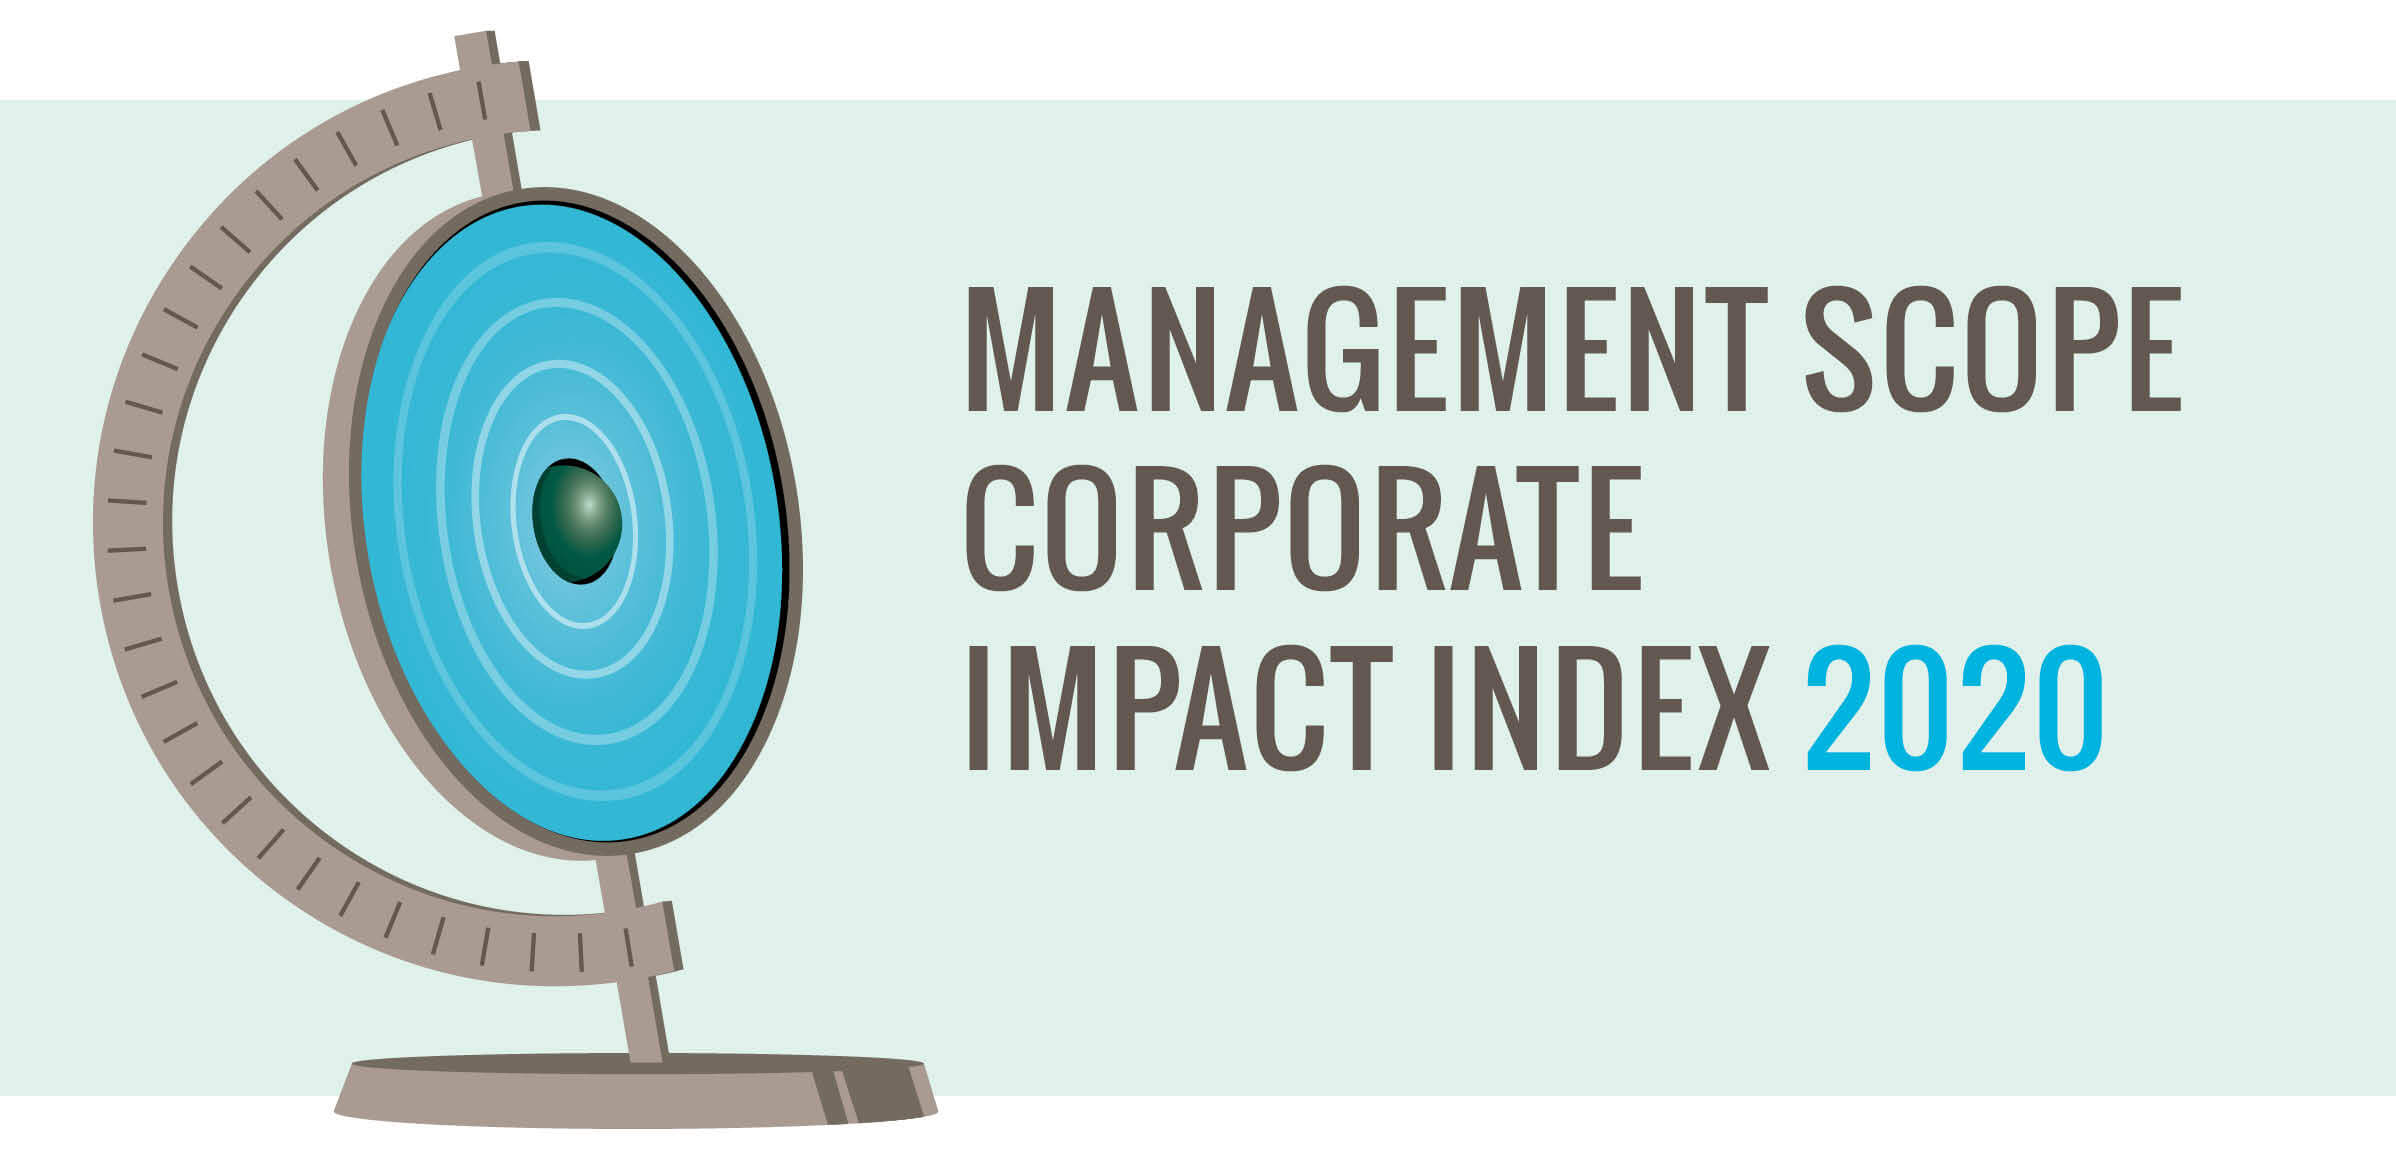 Analyse Management Scope Corporate Impact Index: Oog voor álle stakeholders